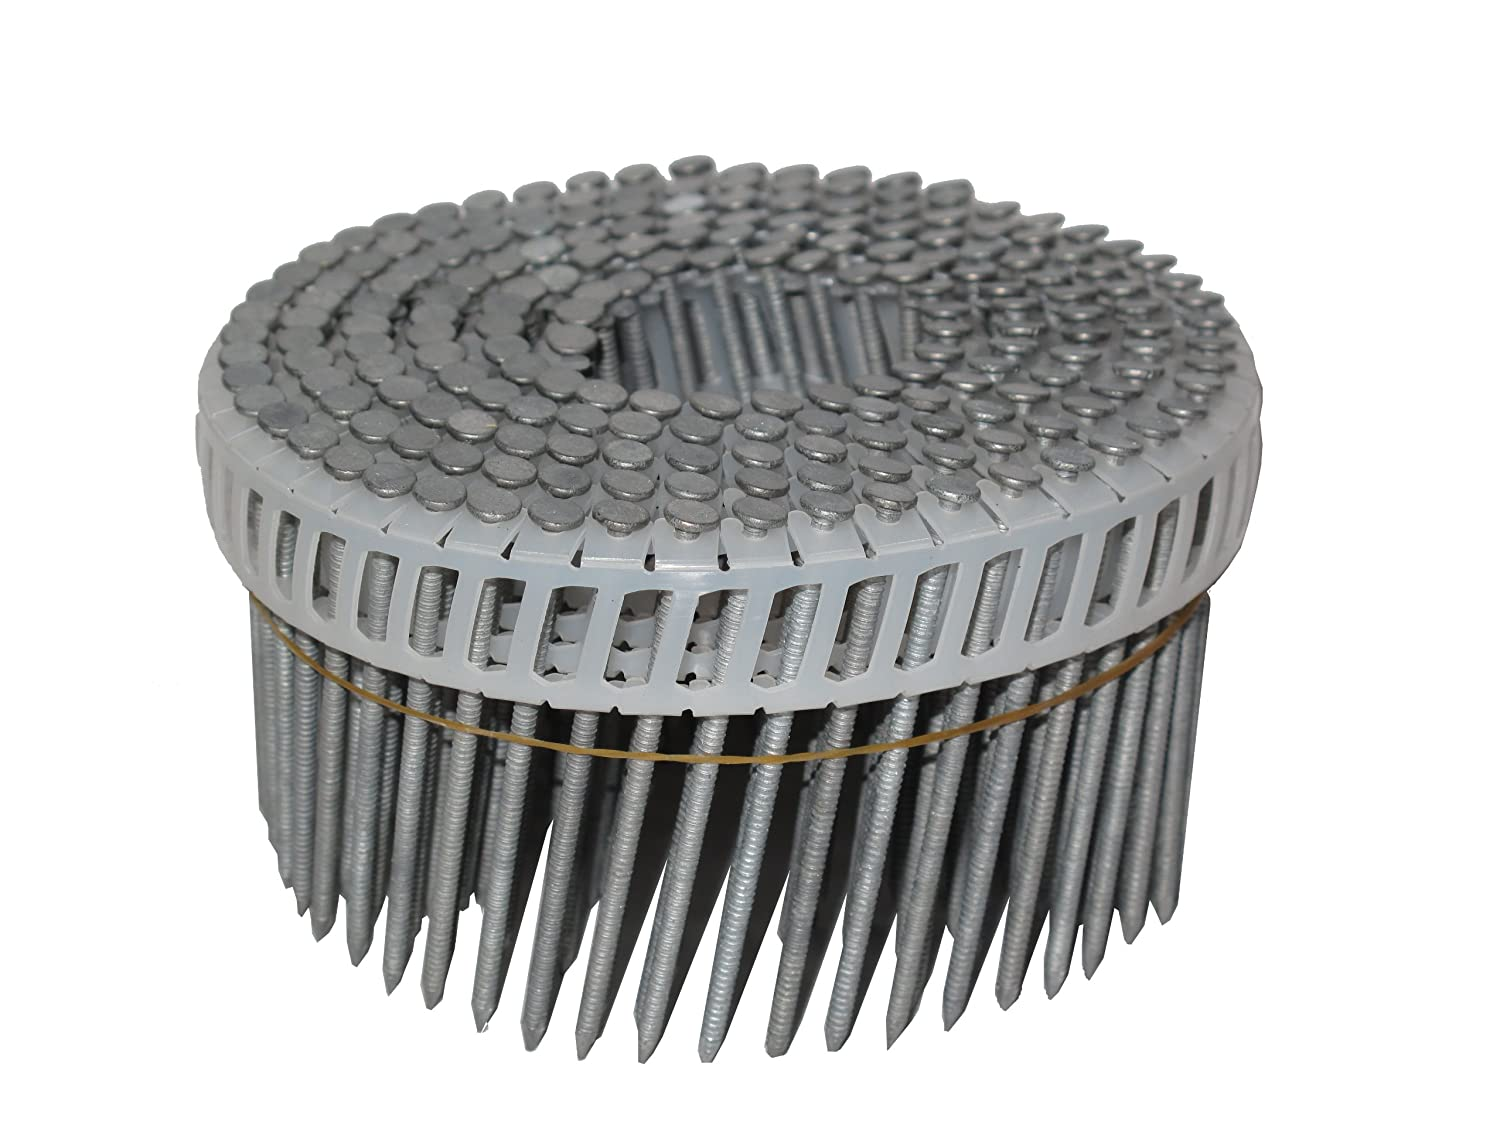 Simpson Swan Secure S13A250IPBP 2-1/2-Inch by 0.095 Ring Shank Insert Plastic Collation T-304 Stainless Steel Coil Siding Nails, 600 per pack